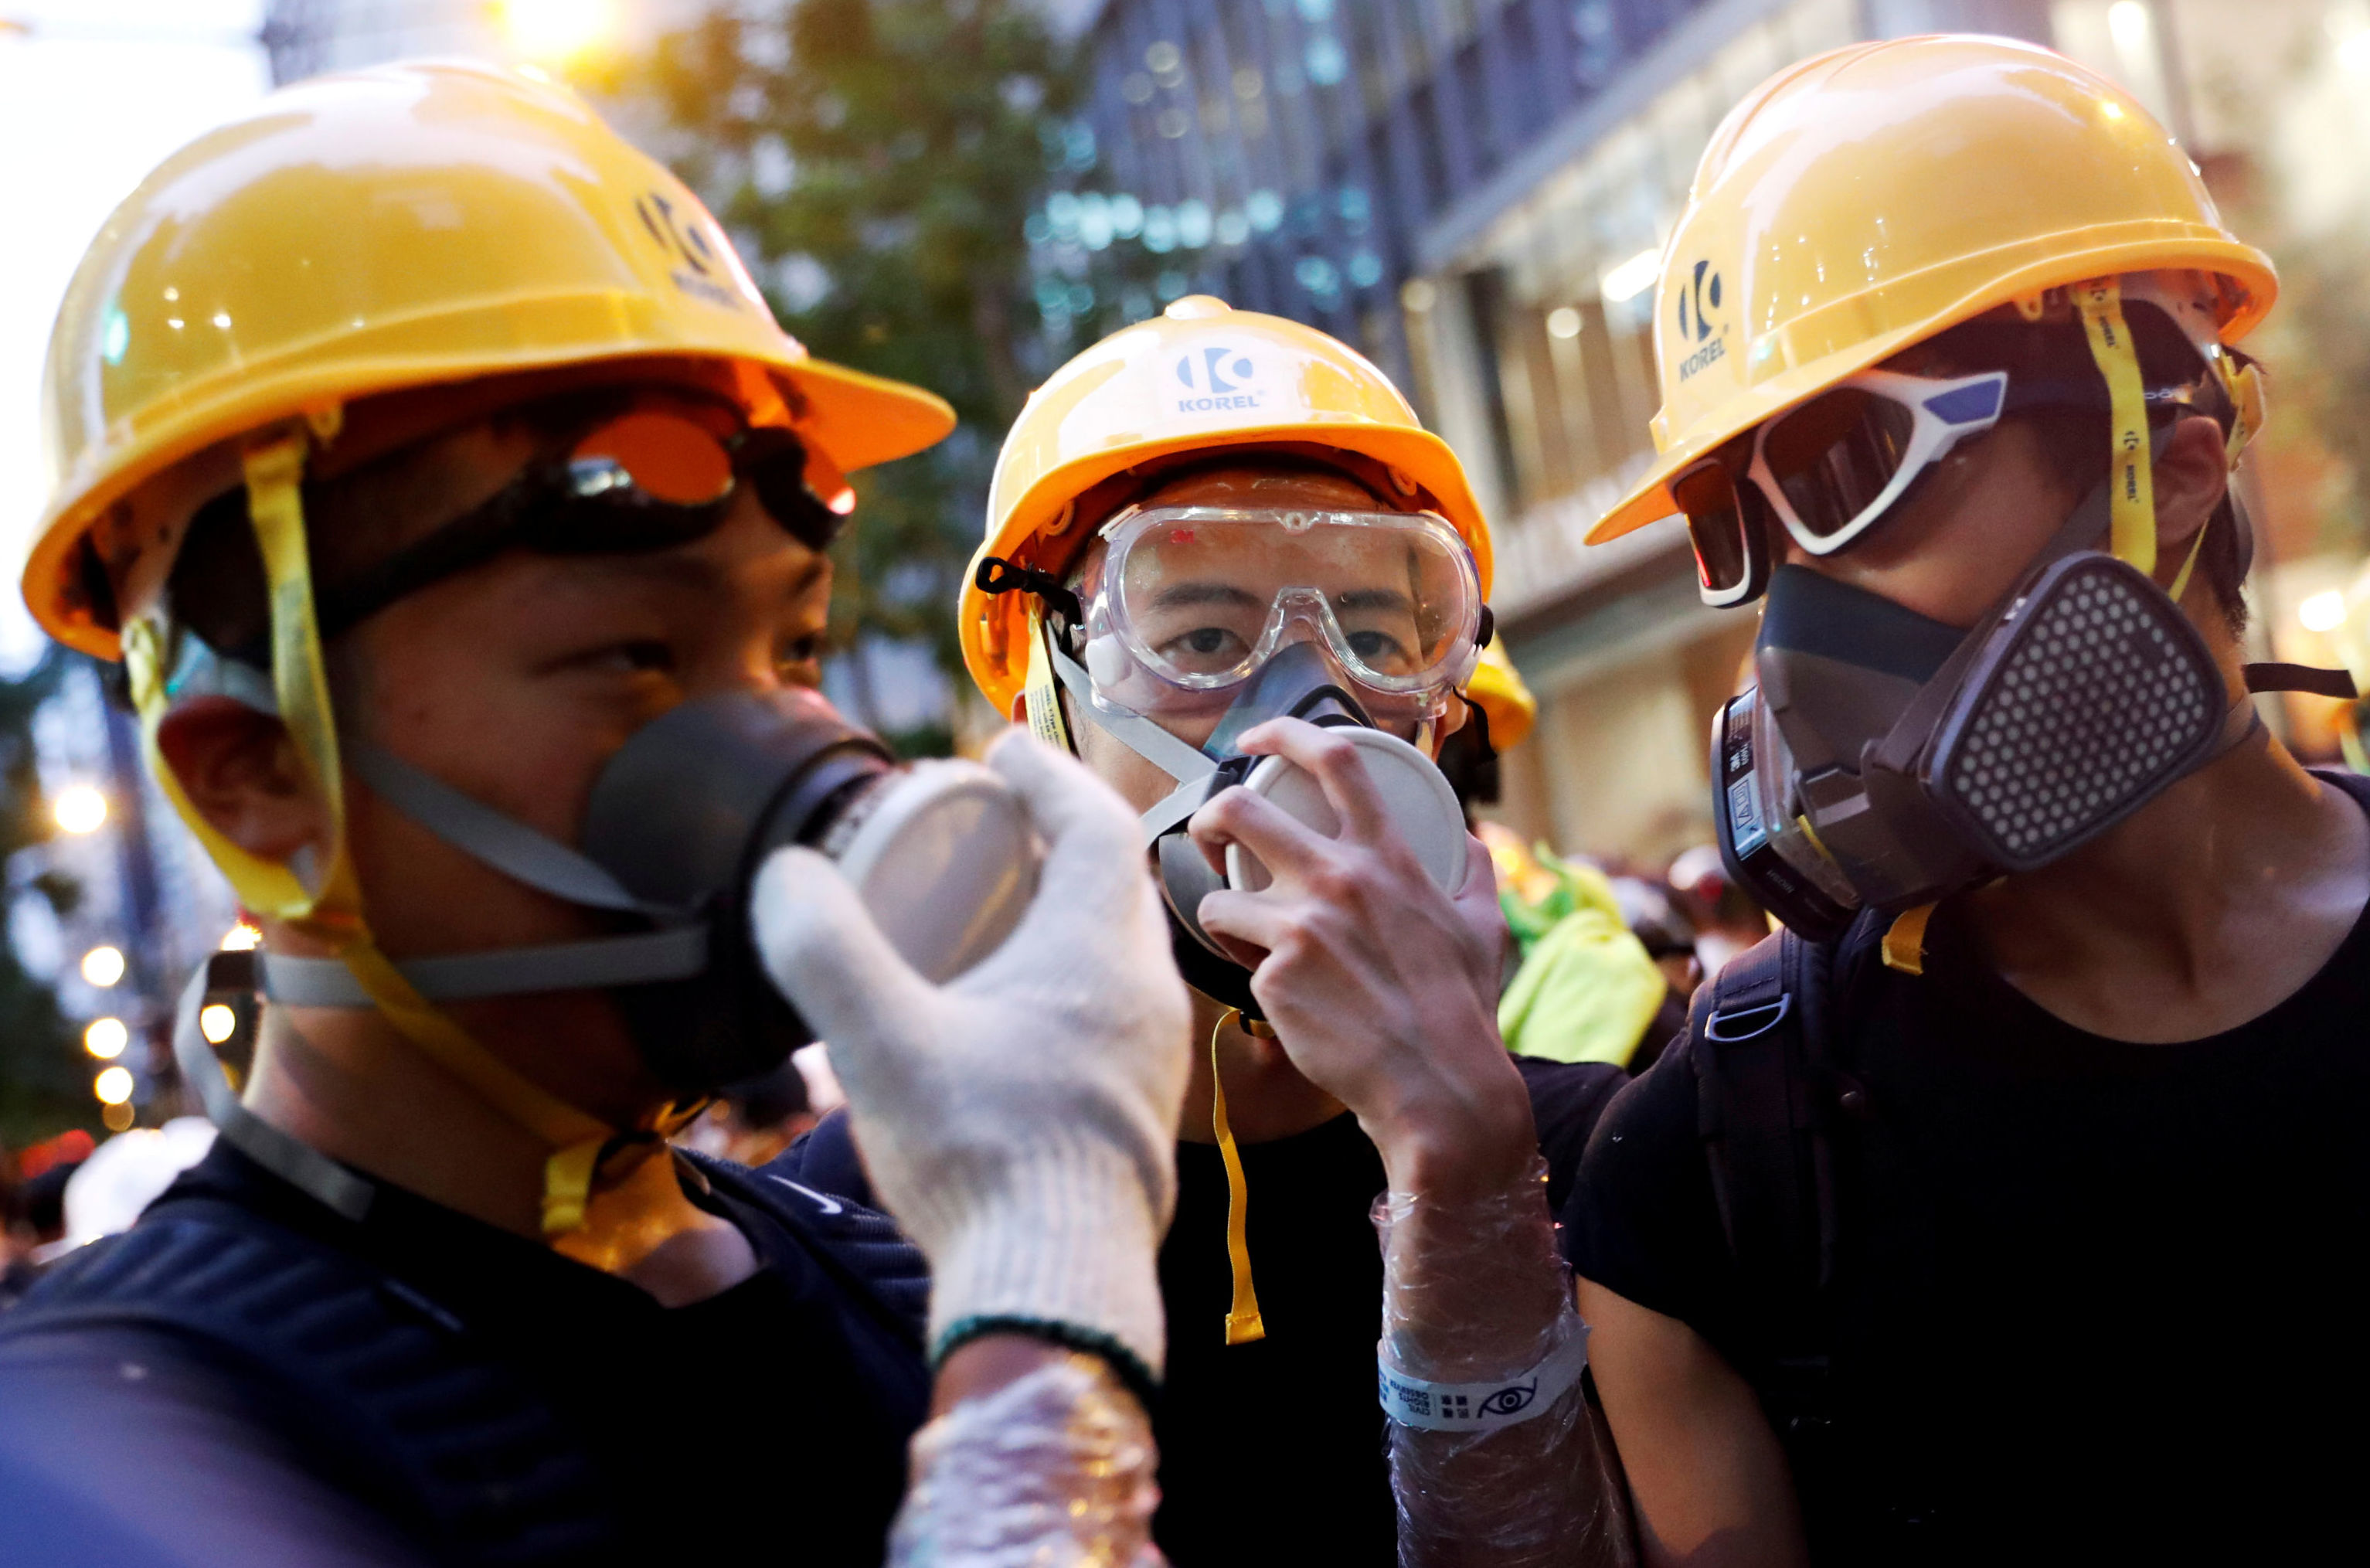 Protesters protect themselves with helmets and masks during a demonstration in Hong Kong